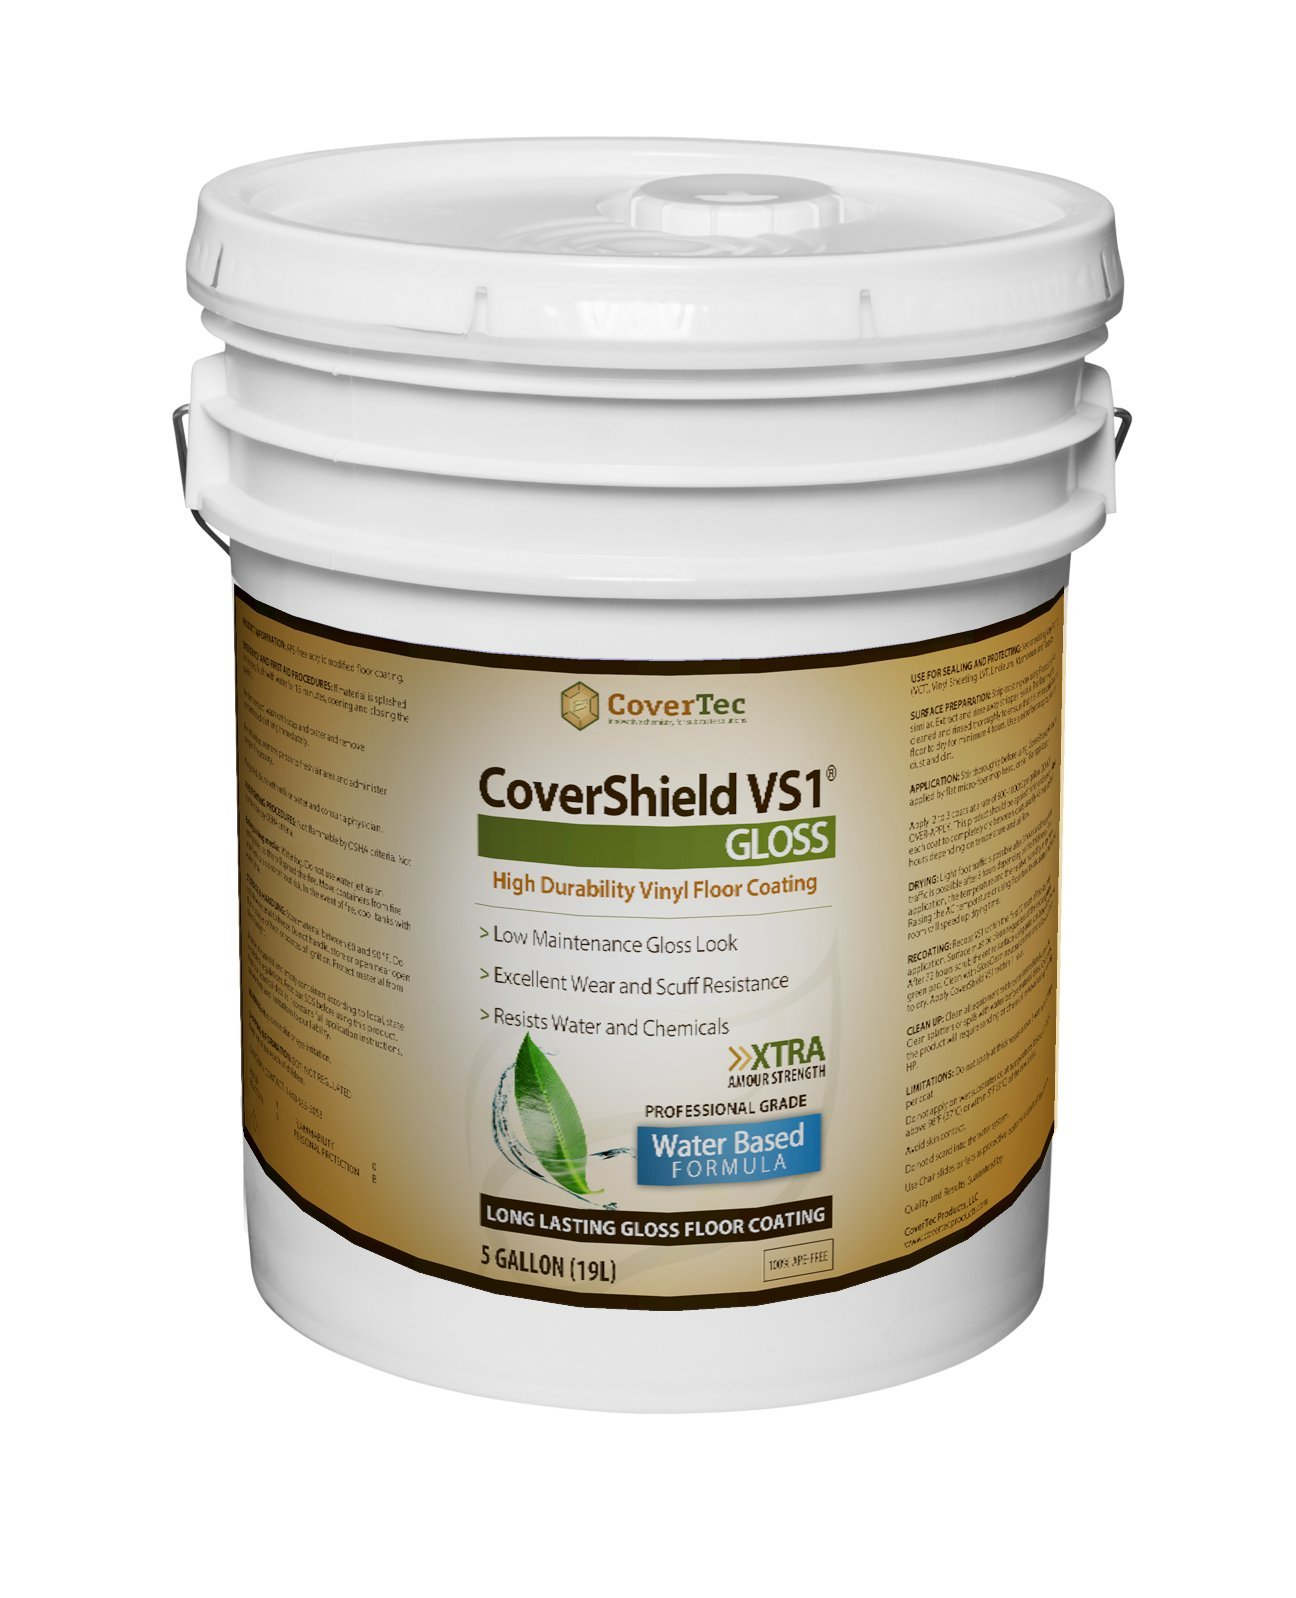 CoverShield VS1 Gloss VCT and Terrazzo Sealer, Fast Drying, Highly Durable, Long Lasting (5 GAL - Prof Grade) by CoverShield by CoverTec (Image #1)